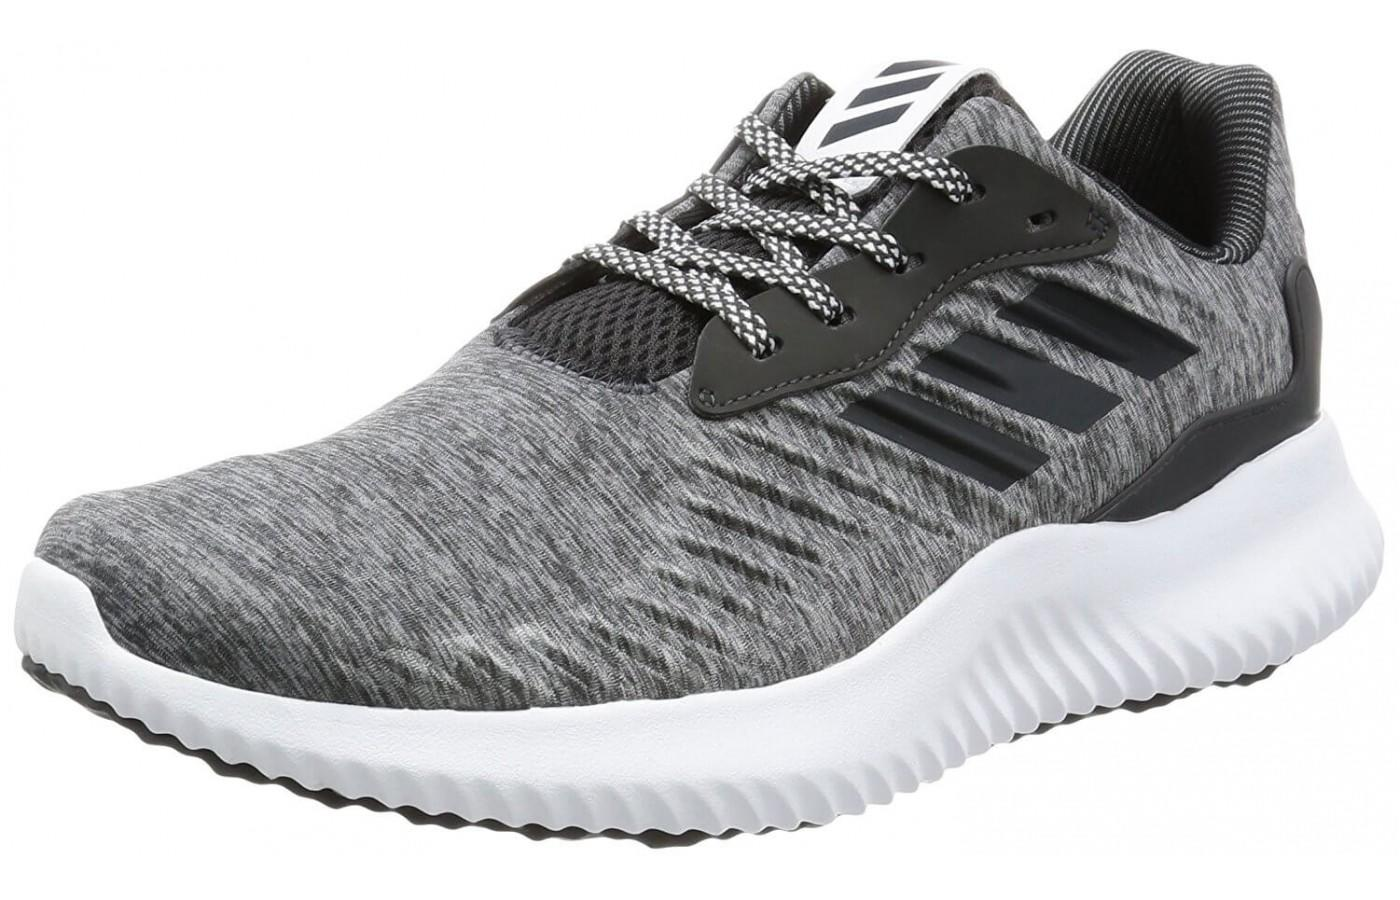 Adidas Alphabounce RC is a neutral shoe